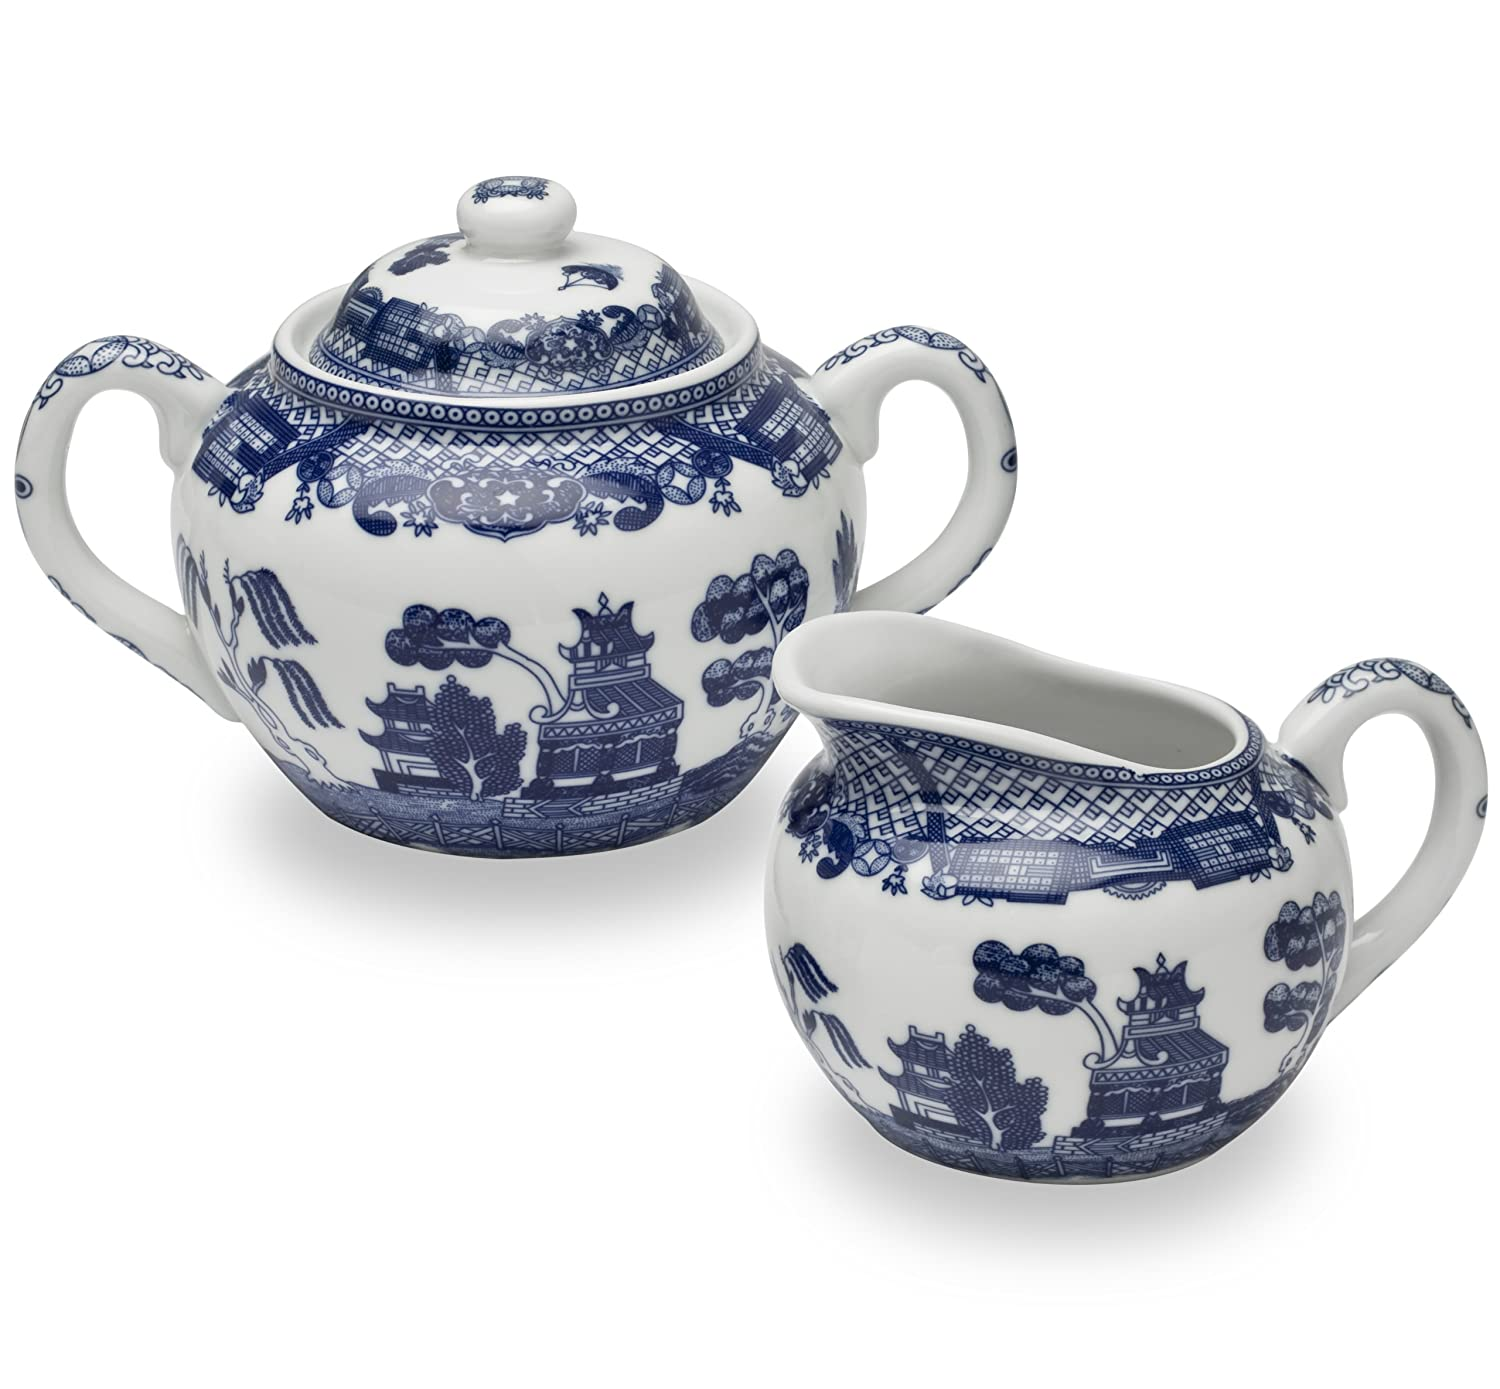 Amazon.com: Cream & Sugar Sets - Serveware